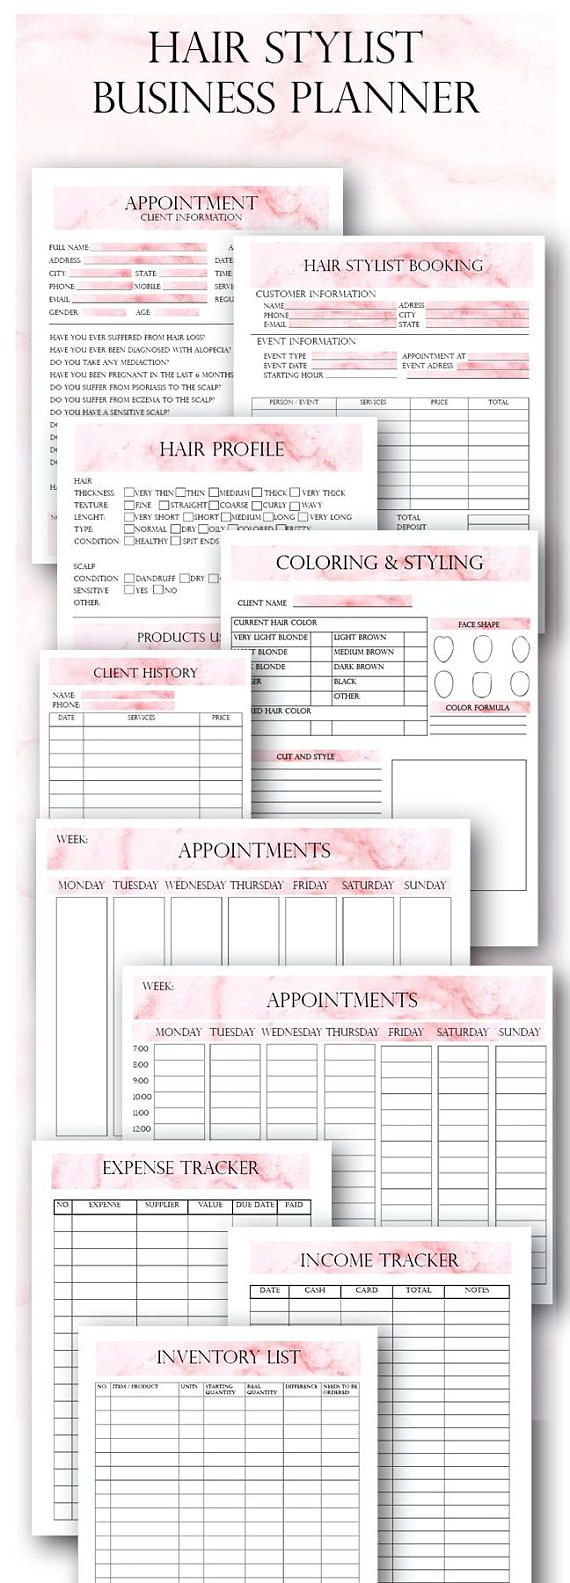 Pink Hair Stylist Printable Business Forms, Hair Stylist Client Form, Appointments, Client Hair Profile, Hair Stylist Booking Form WHATS INCLUDED: ► Appointments ► Client History Cards ► Coloring and Styling Sheet ► Hair Profile Page ► Hair Stylist Booking Form for events ► Hair Extensions Waiver Form ► Income Tracker ► Expense Tracker ► Inventory List ► Services List - editable FORMAT: ►The files are in PDF, they come in a ZIP. SIZES: ► Pages: US Letter (8.5 x 11 in) ► Card designs: Half...